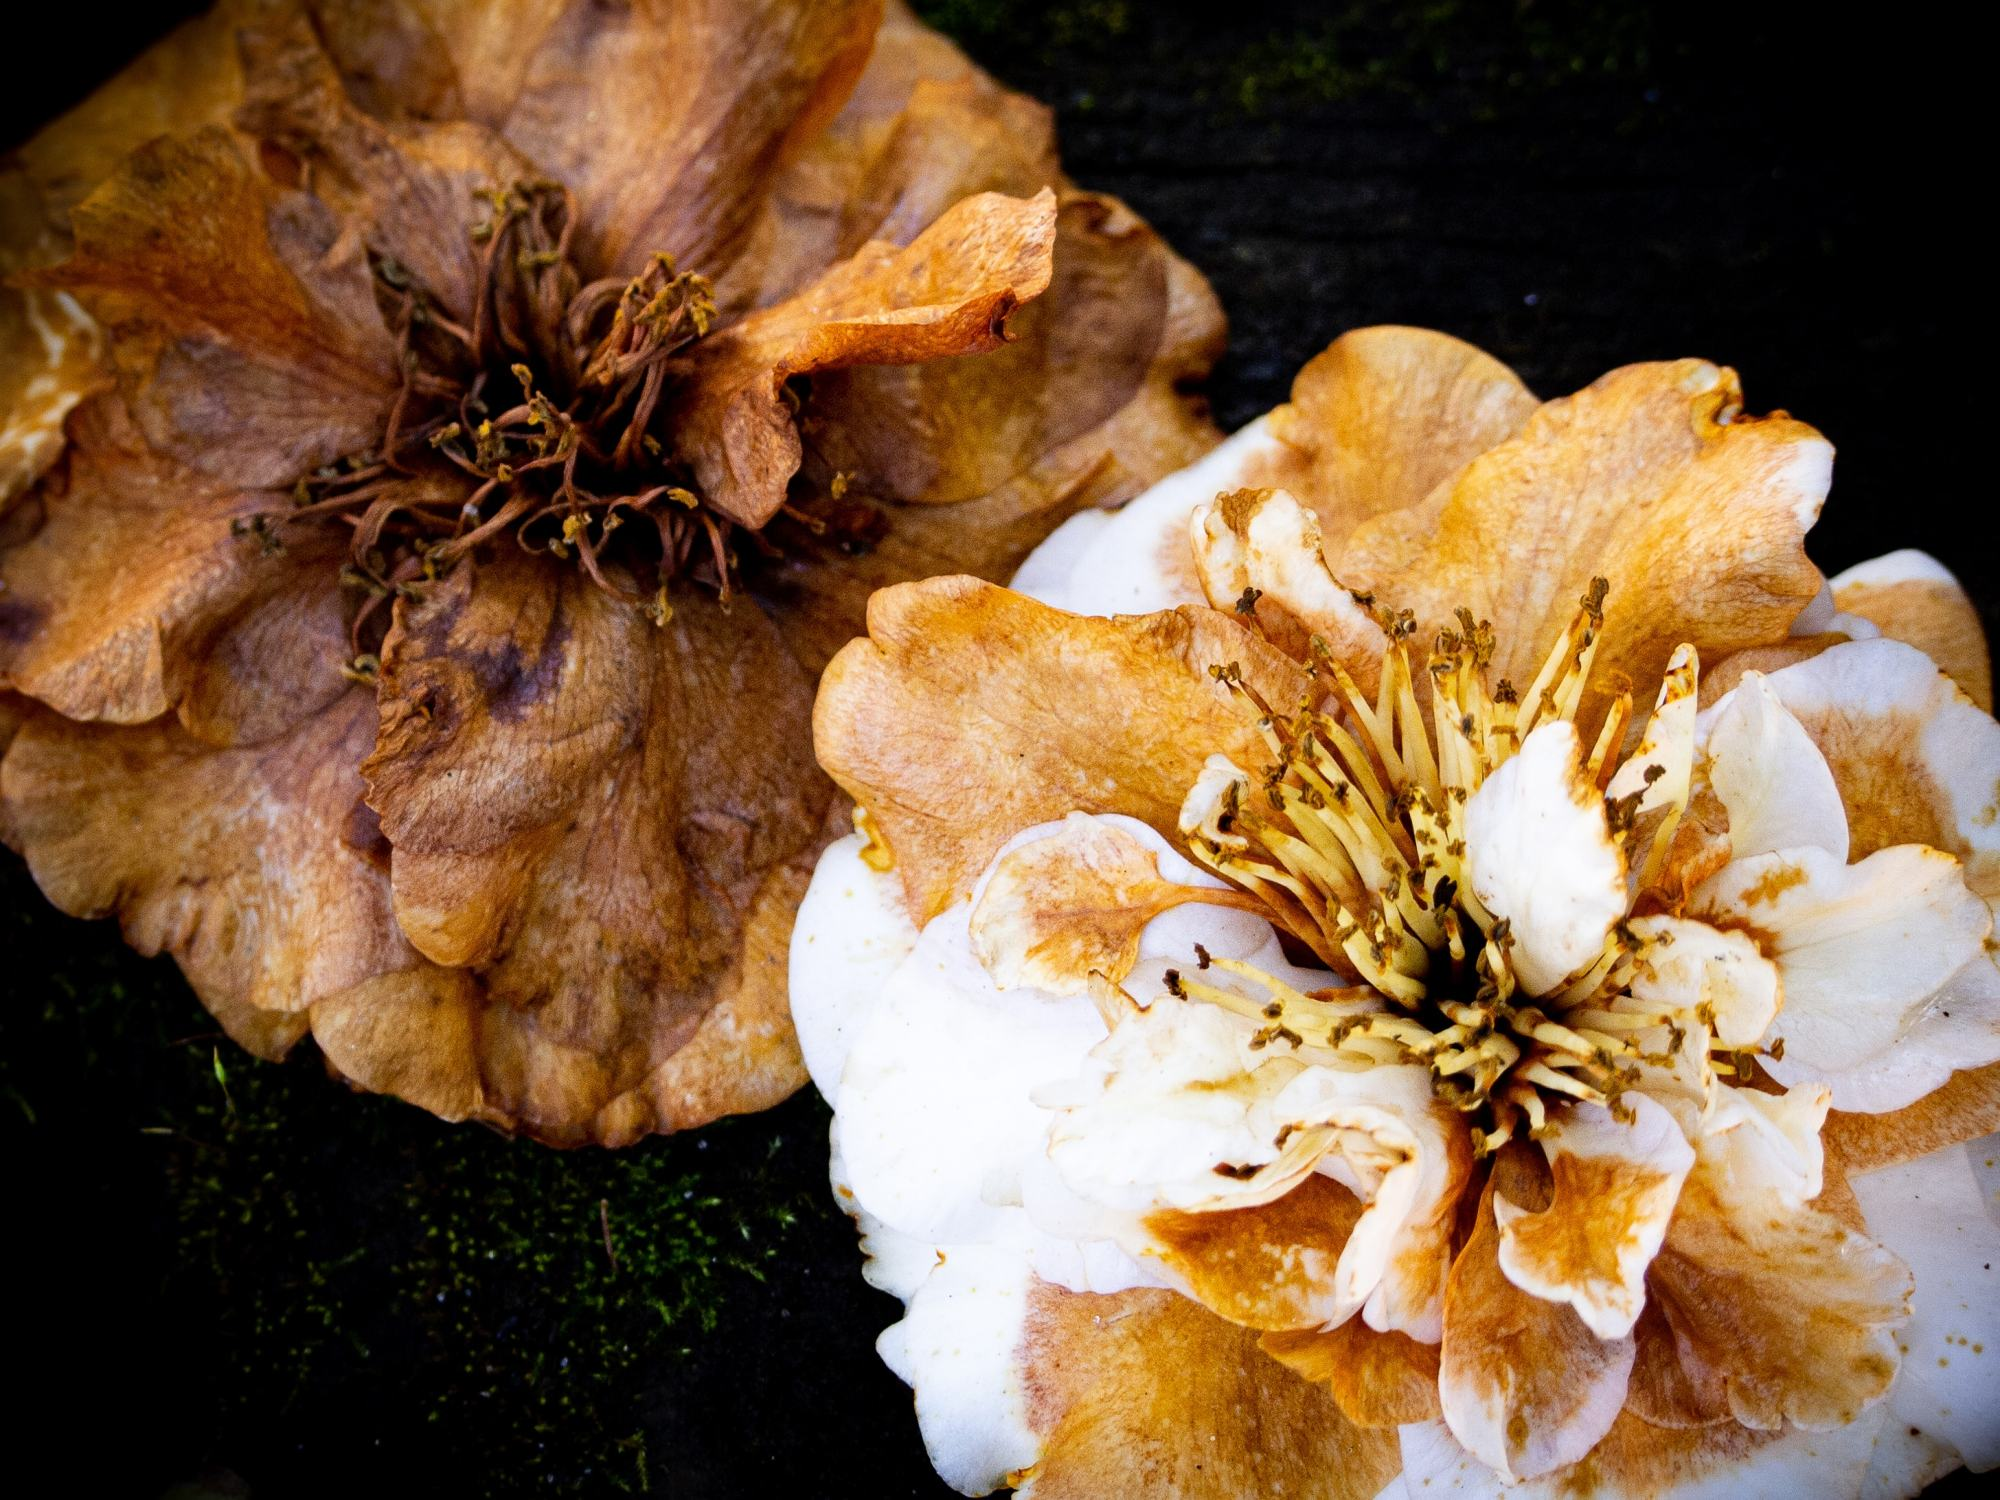 A photo of dying Camellia flowers by LensMoments - Nichole Spates 2020